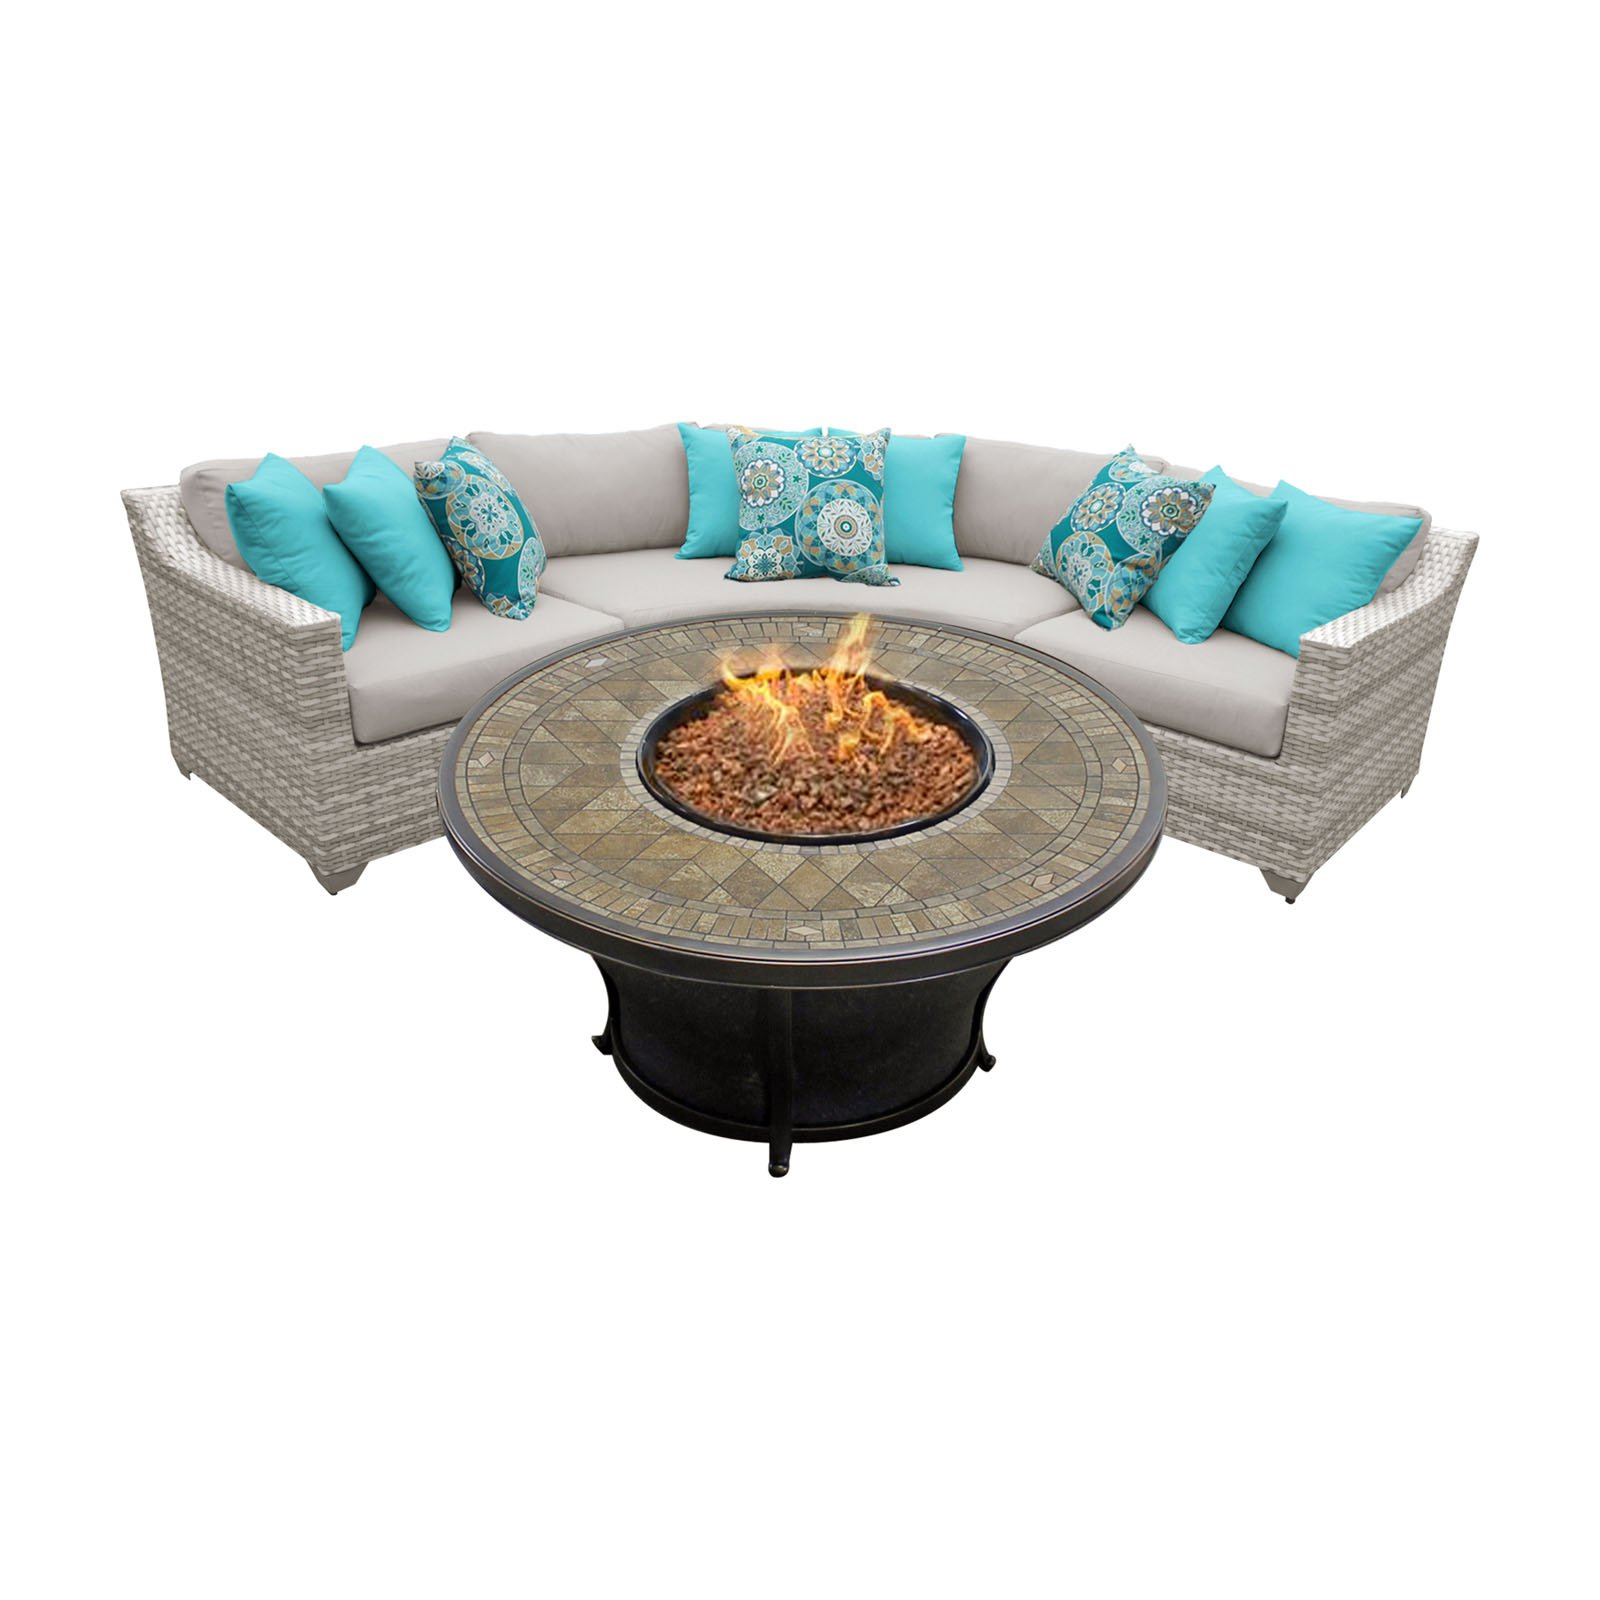 TK Classics Fairmont 04E Wicker 4 Piece Fire Pit Patio Set